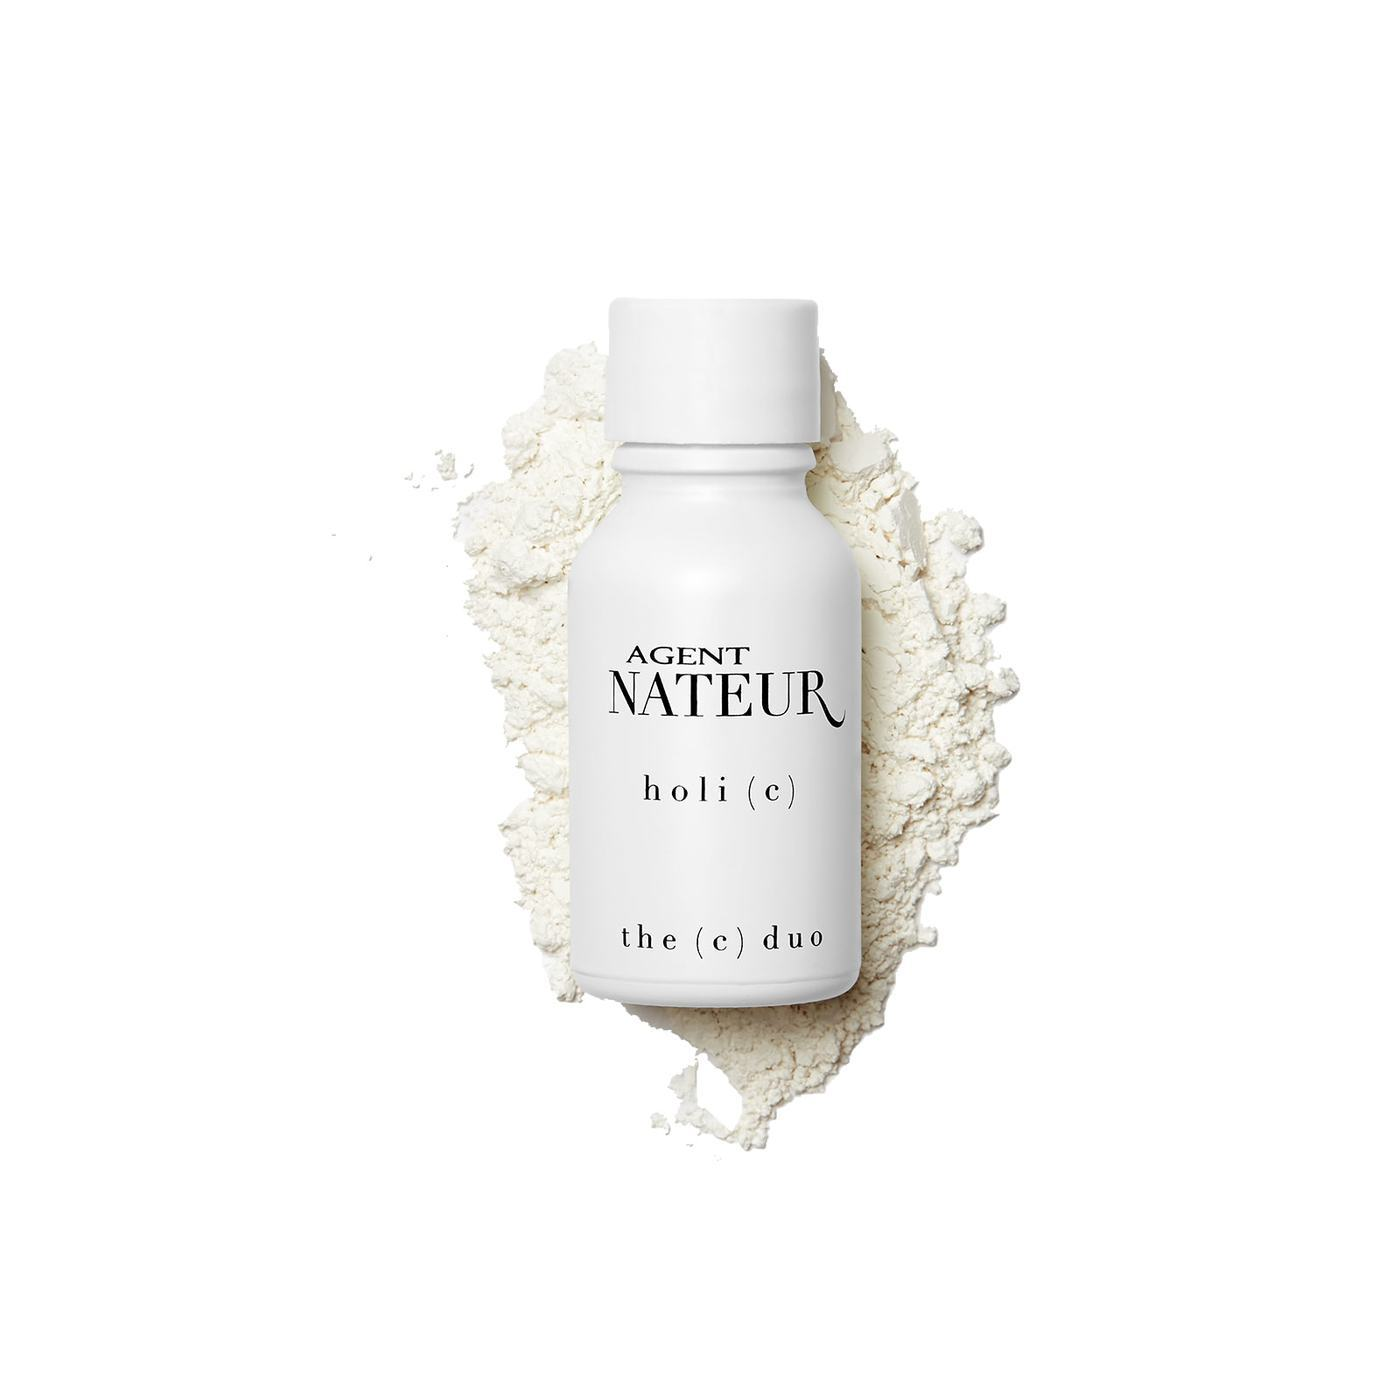 Powder Vitamin C for the face by Agent Nateur